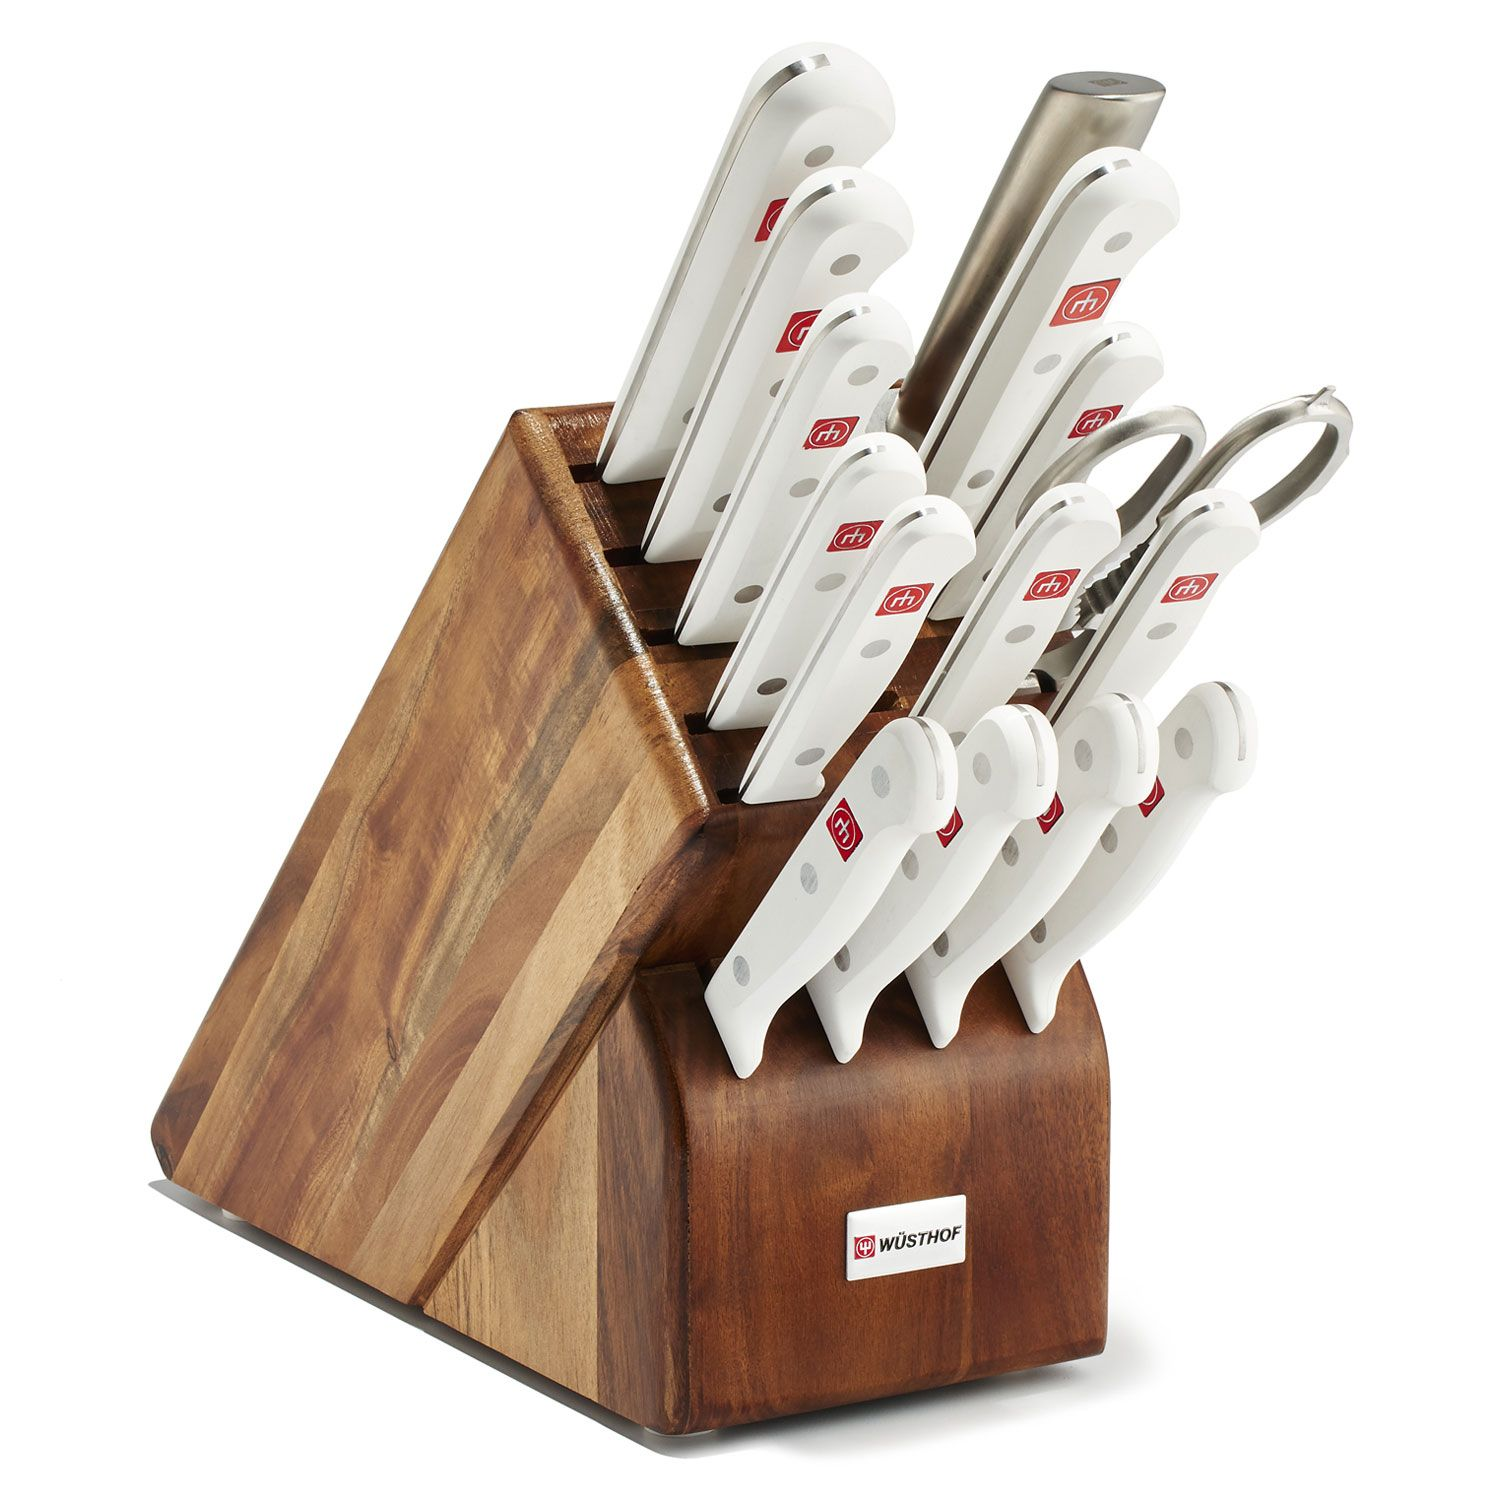 Wusthof Gourmet White 16 Piece Block Set, Acacia Wood Block